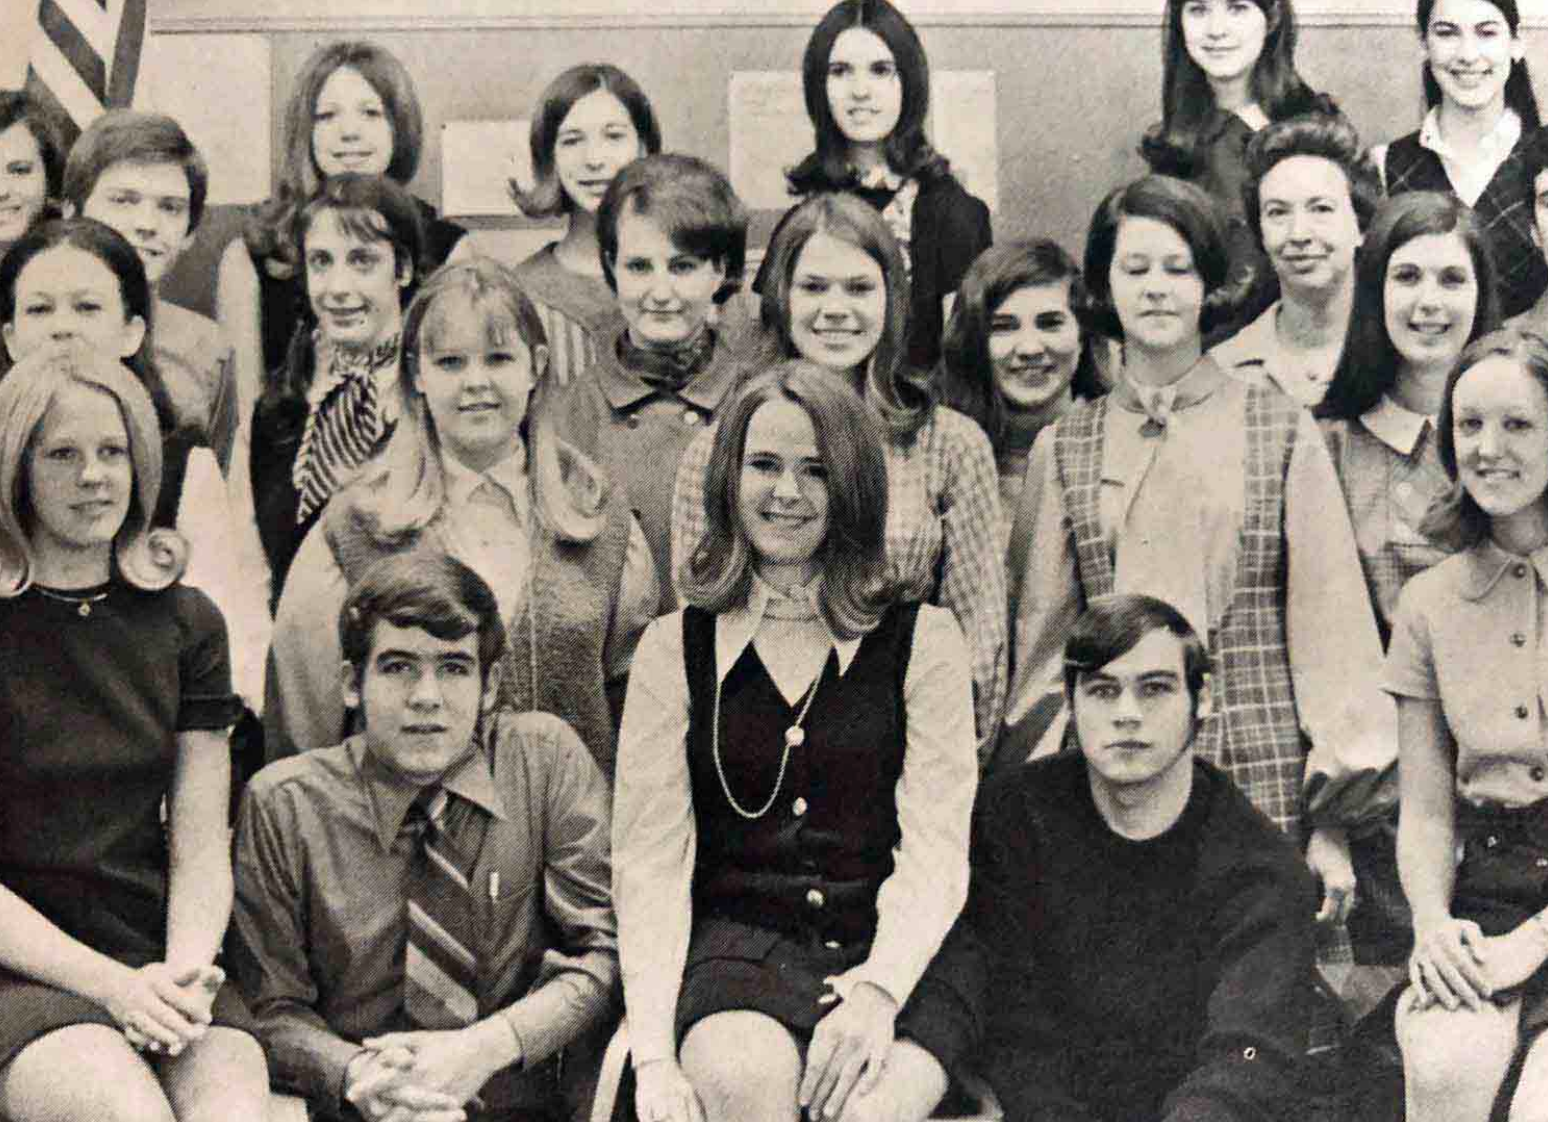 THE FANG STAFF LHHS 1970